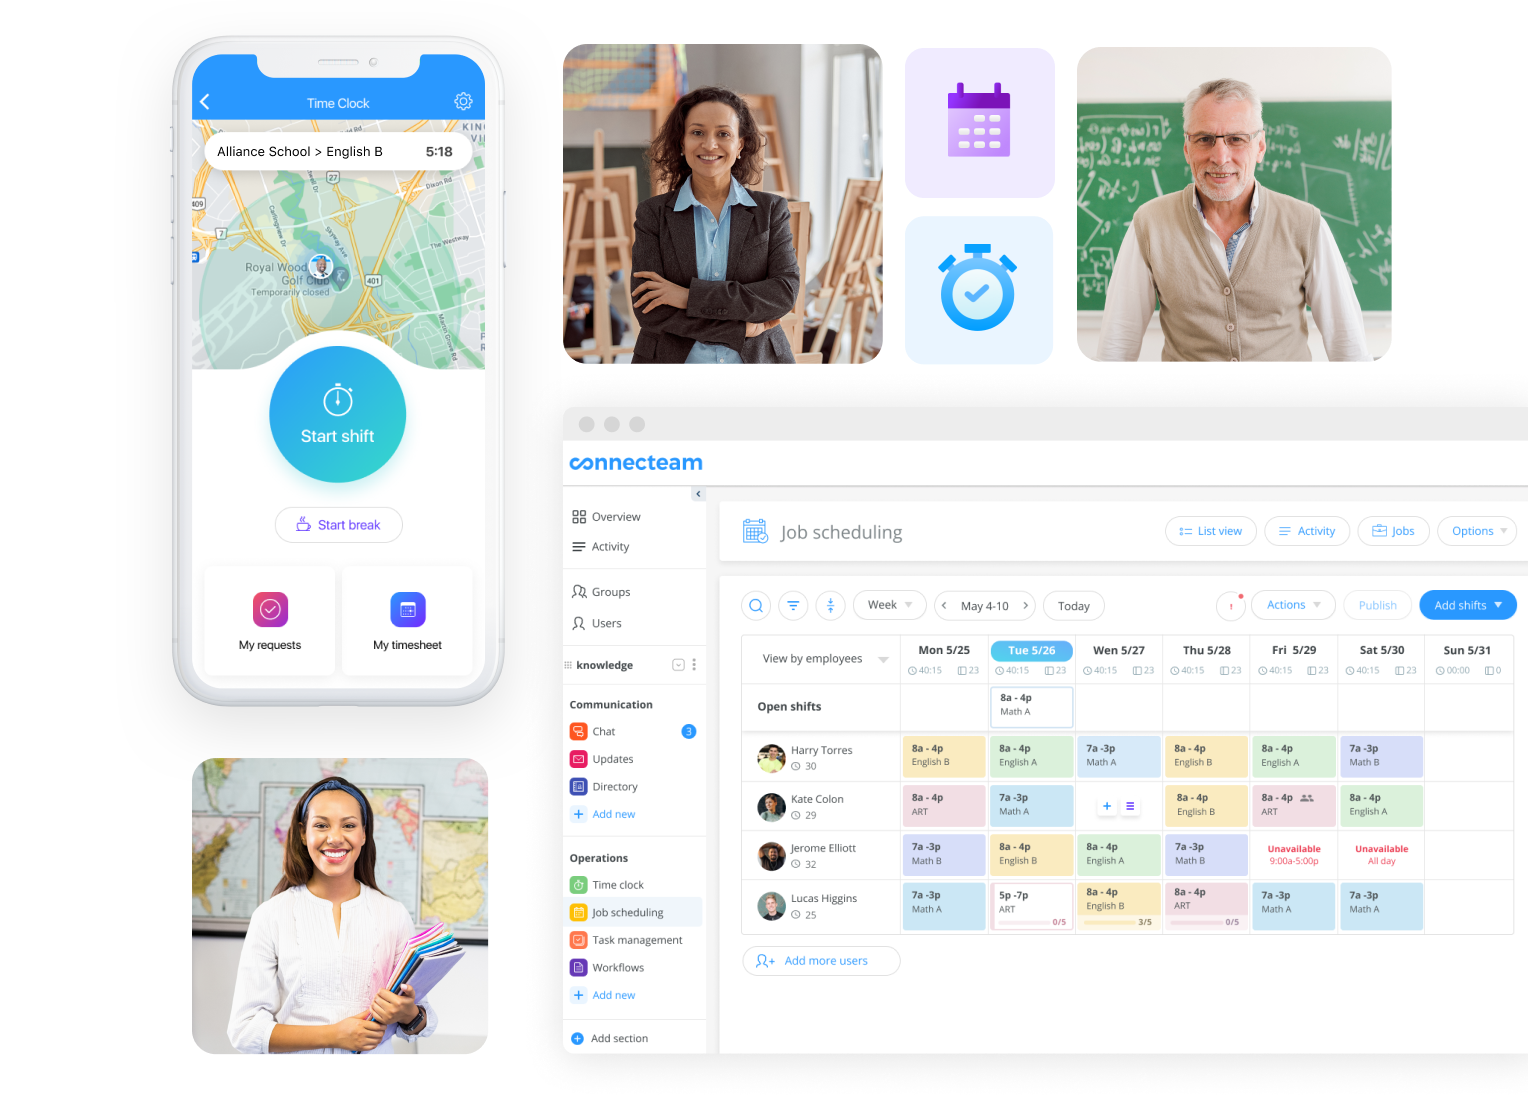 All-in-one education employee management app